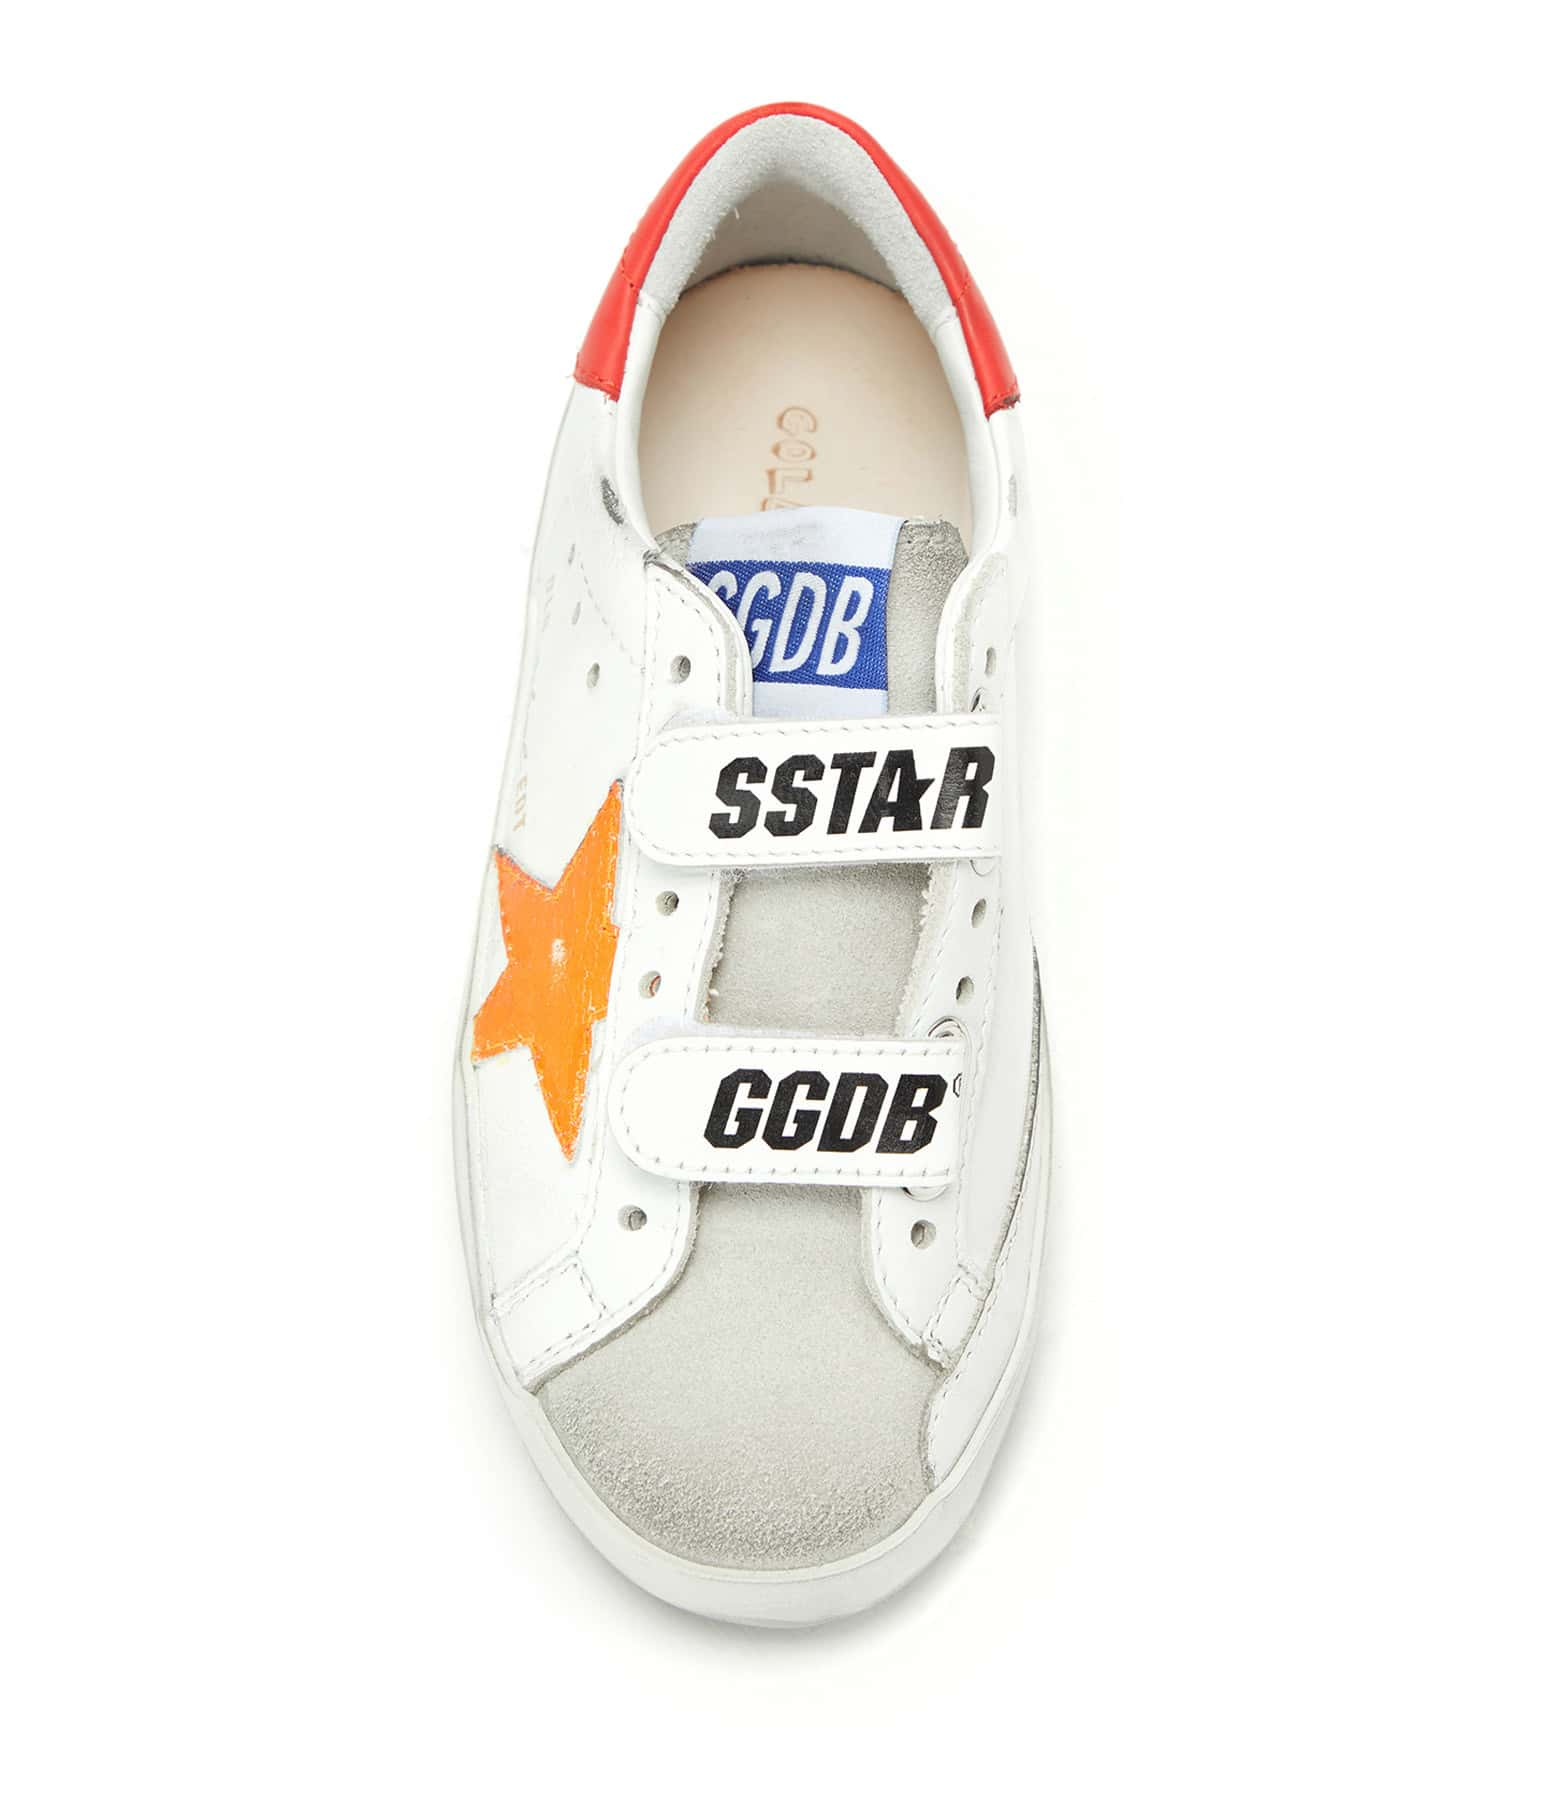 GOLDEN GOOSE - Baskets Enfant Old School Cuir Orange Fluo Cerise